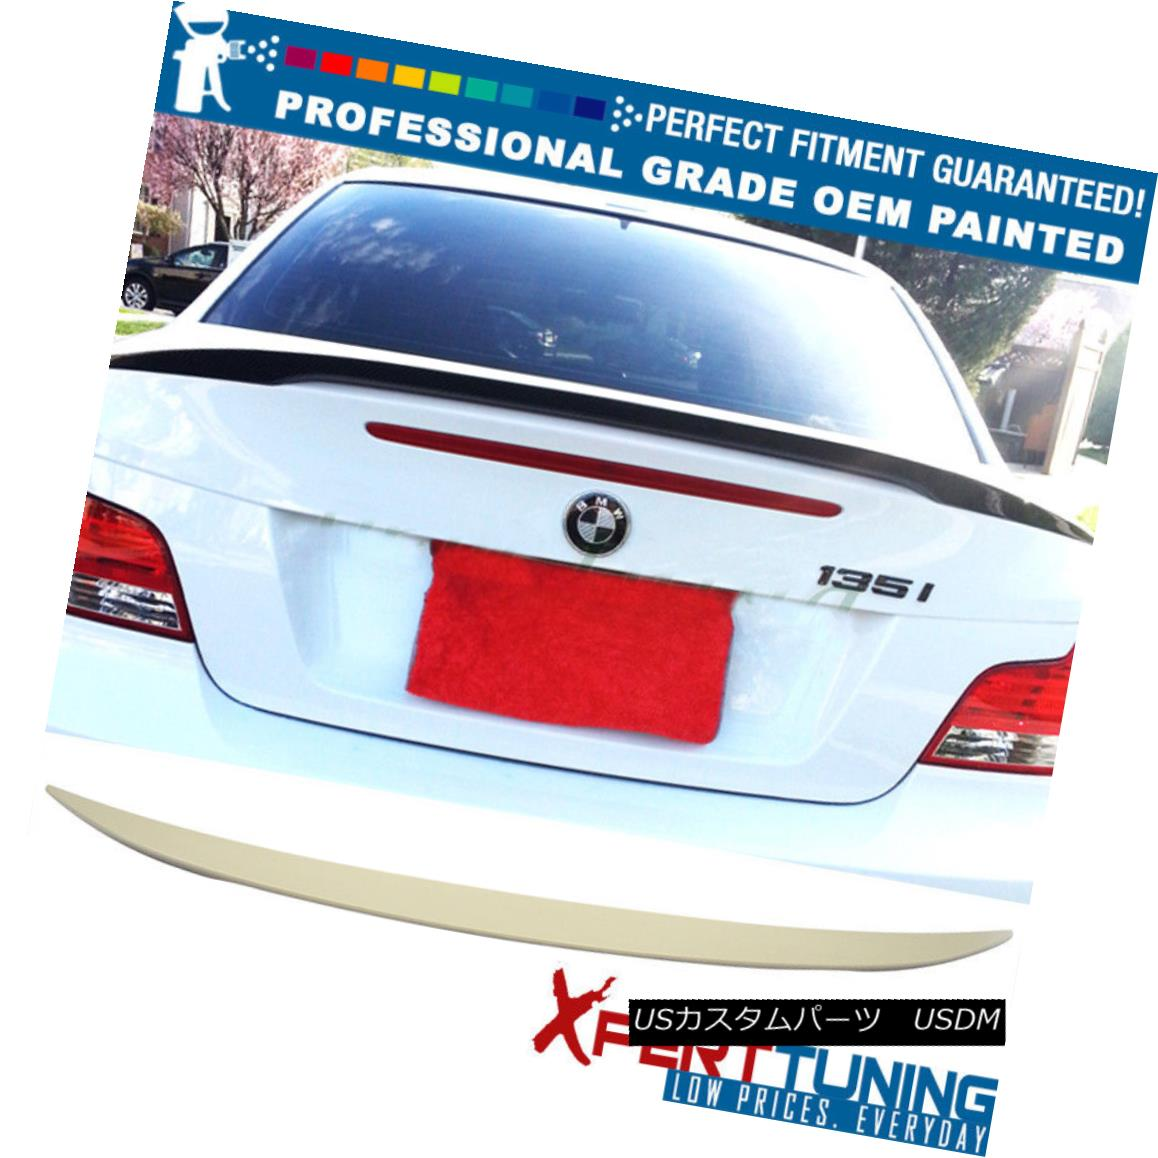 エアロパーツ 07-13 1-Series E82 2Dr Coupe Painted ABS Trunk Spoiler - OEM Painted Color 07-13 1シリーズE82 2Drクーペ塗装ABSトランク・スポイラー - OEM塗装色